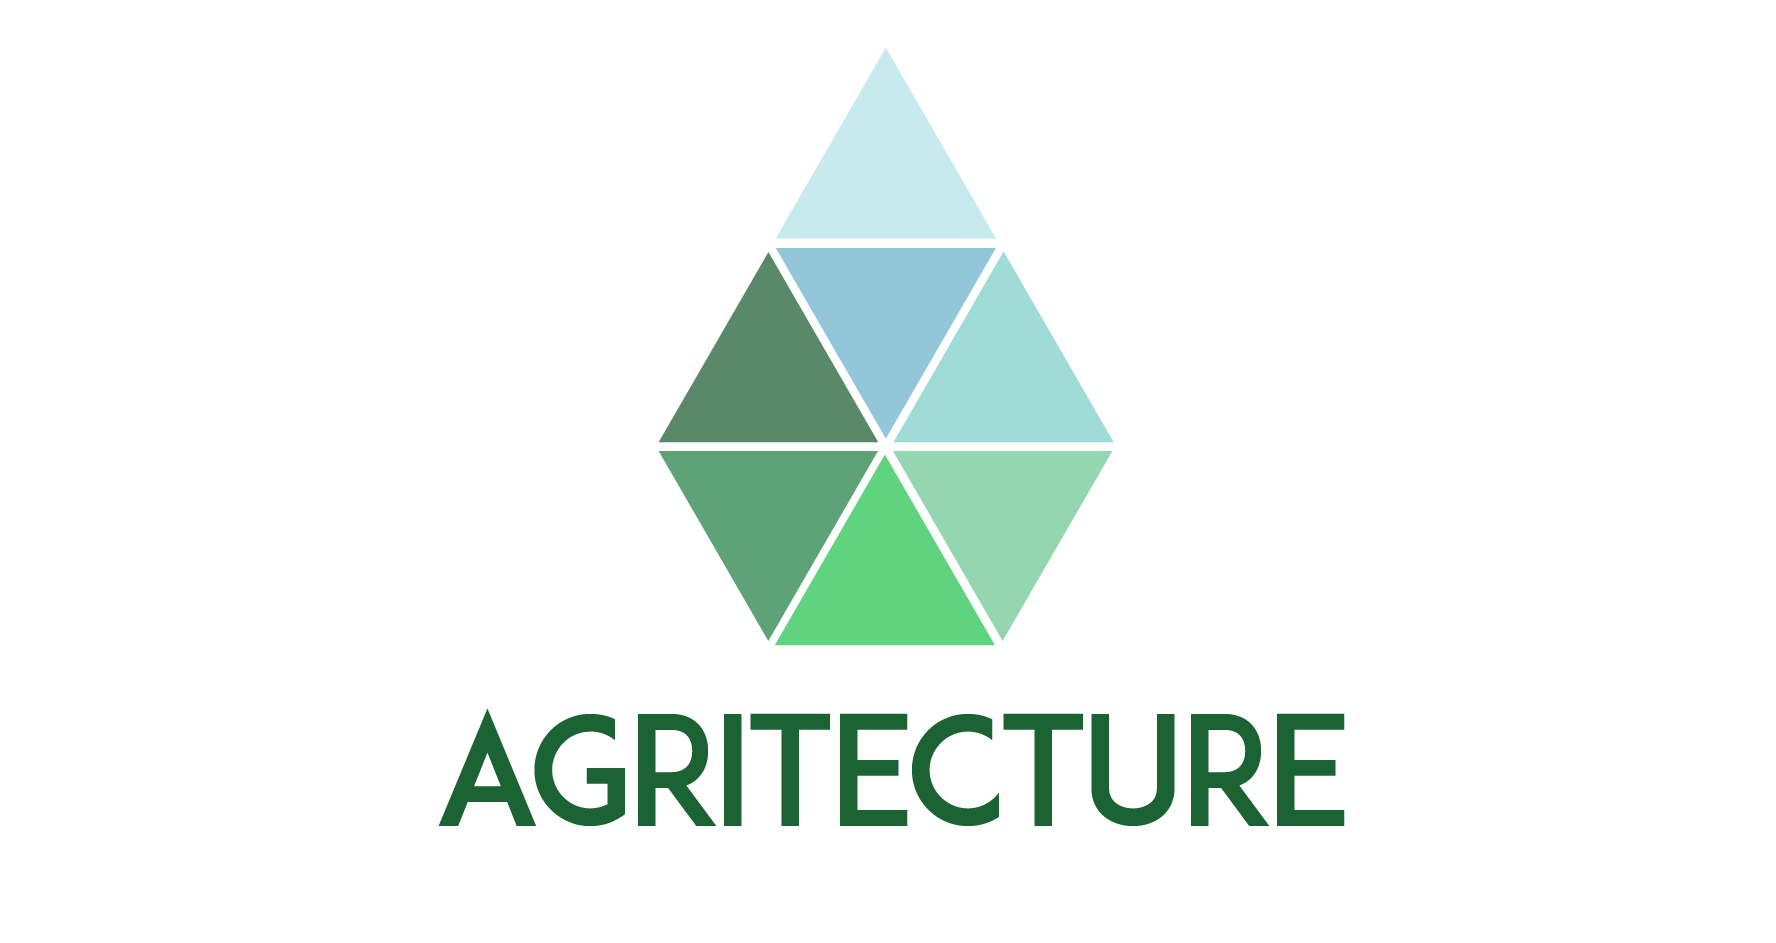 Agritecture logo copy.png